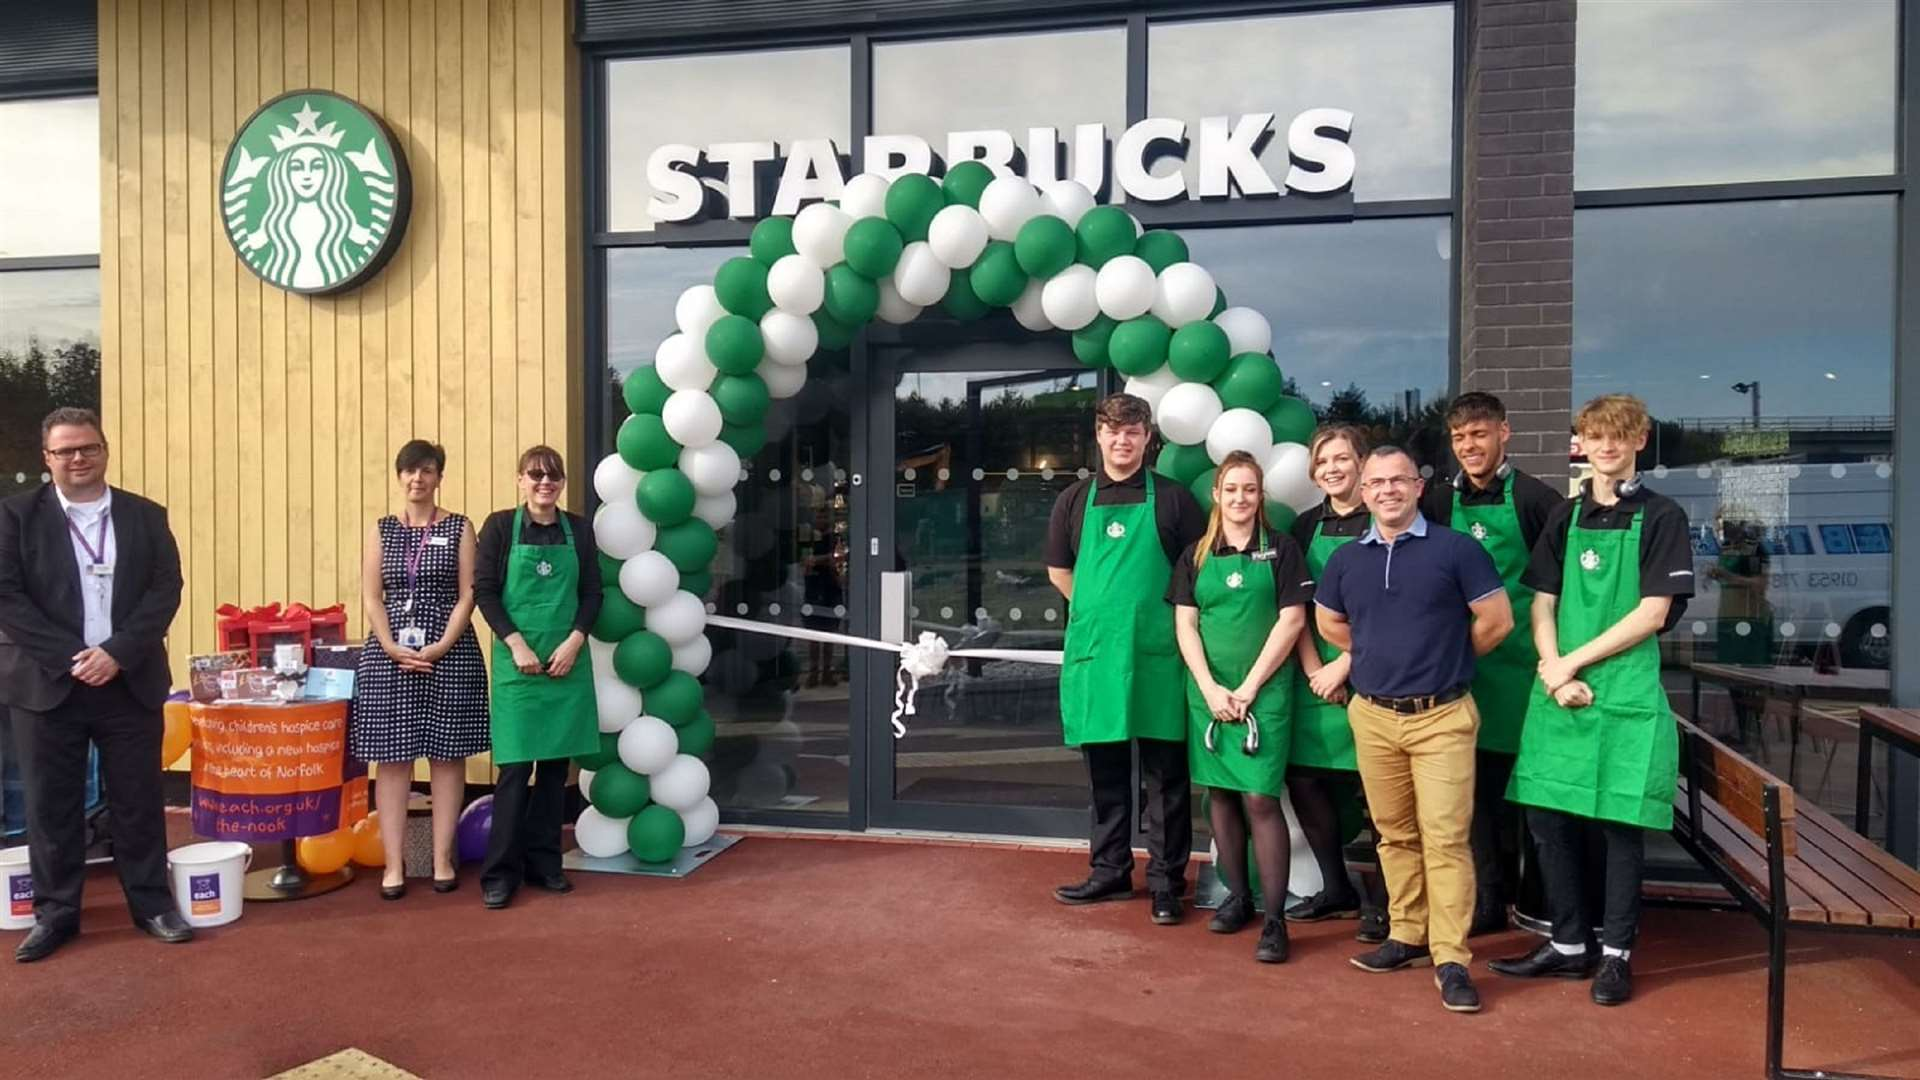 A new Starbucks drive-thru has opened in Snetterton.